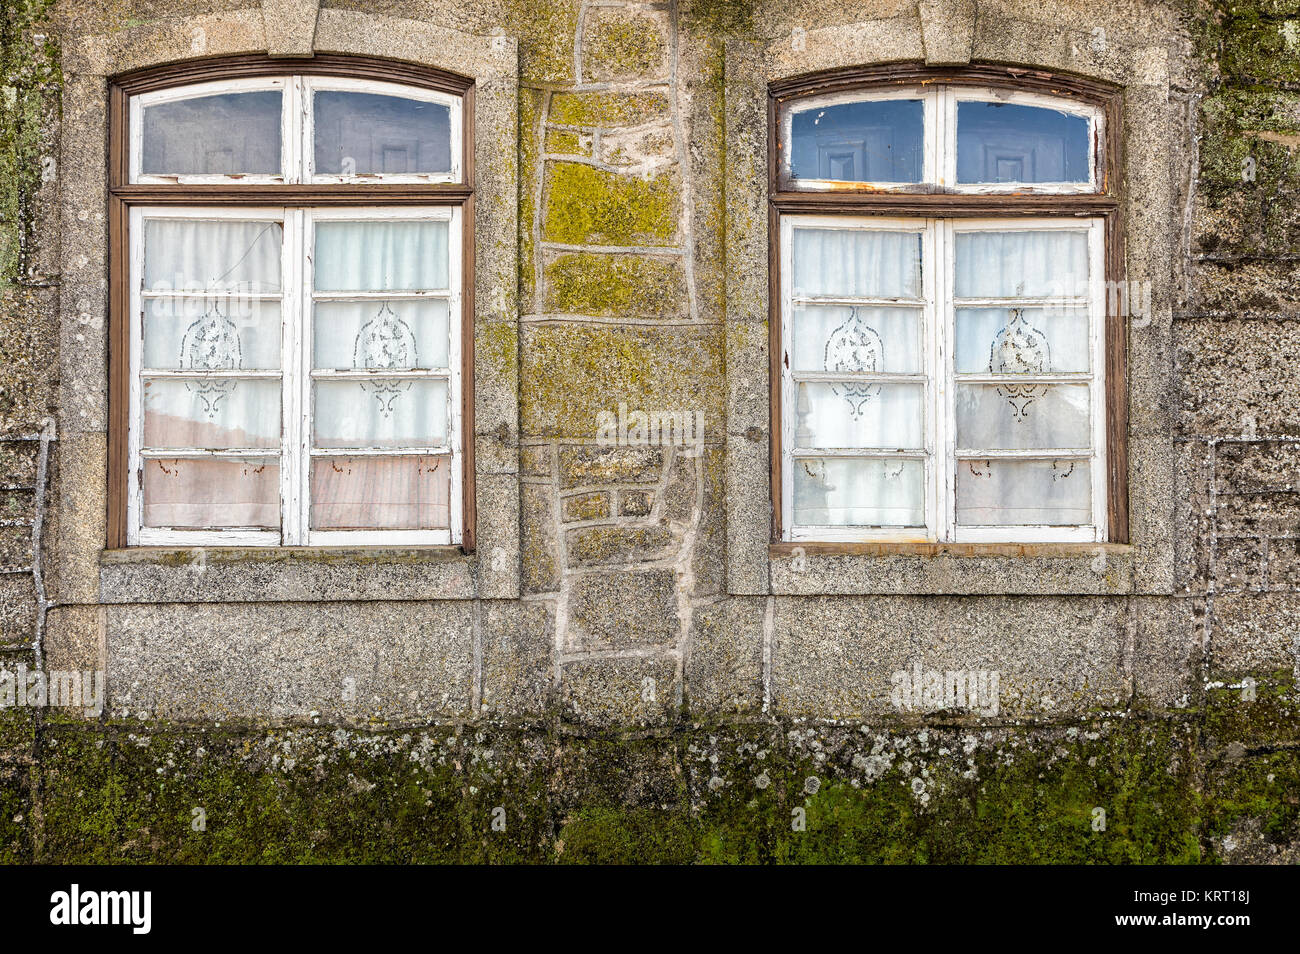 Two old windows in a small town in Portugal. - Stock Image